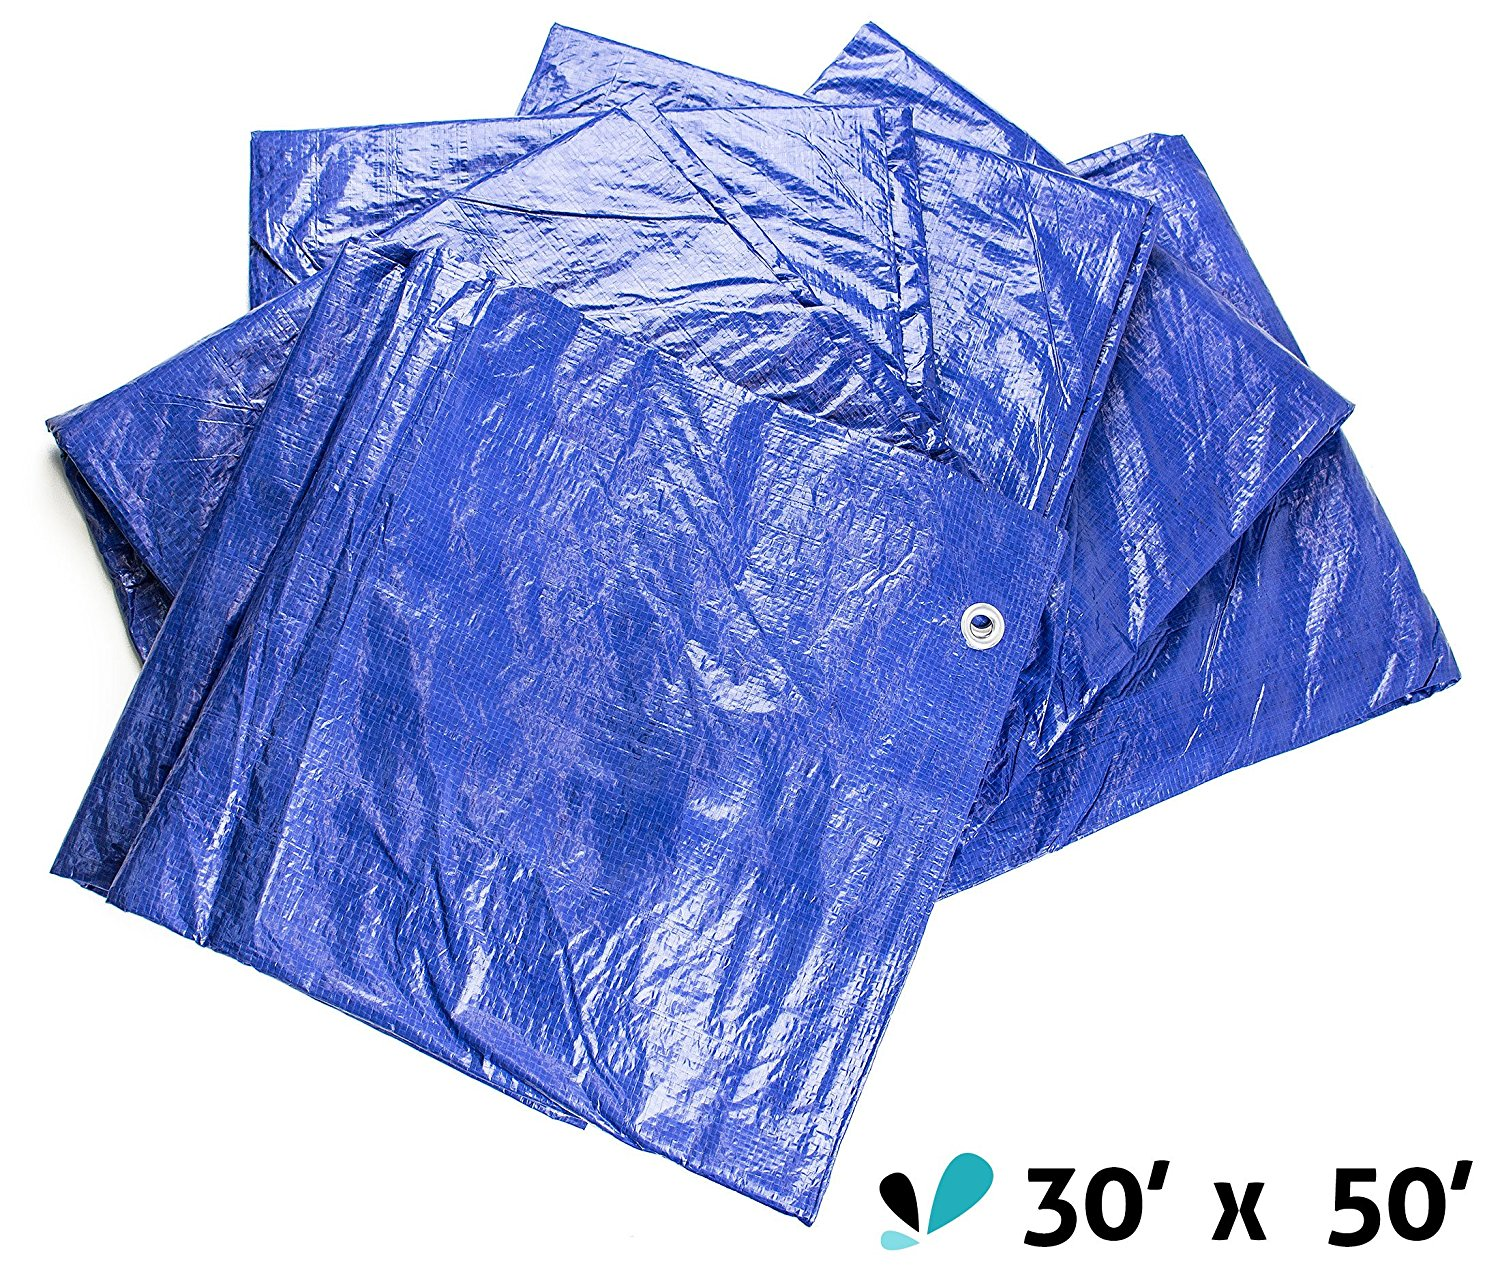 RK Safety All Purpose Waterproof Poly Tarp Cover (30-Feet x 50-Feet, Blue)